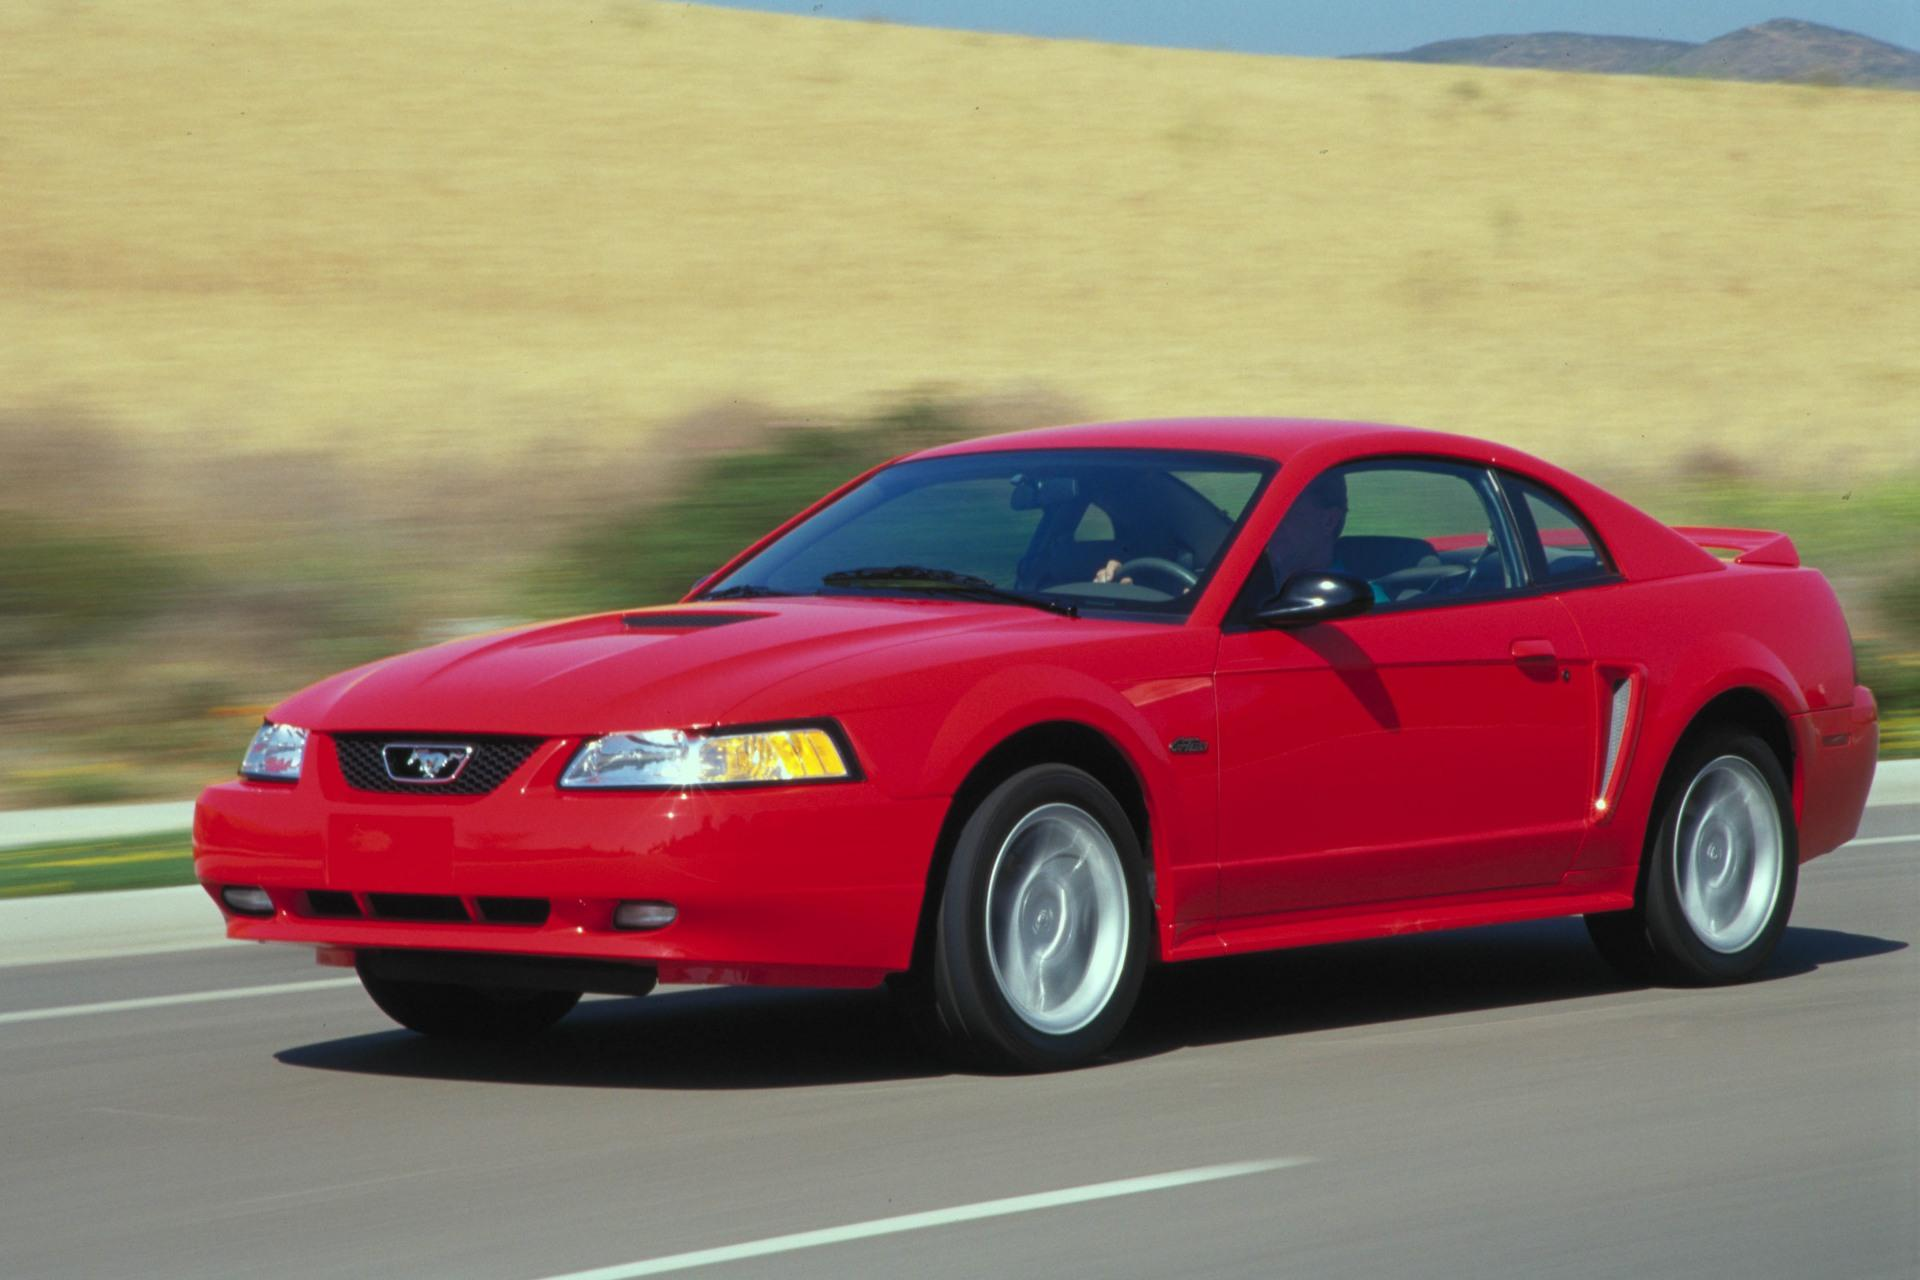 Ford Gt Price >> 2000 Ford Mustang Image. Photo 15 of 23